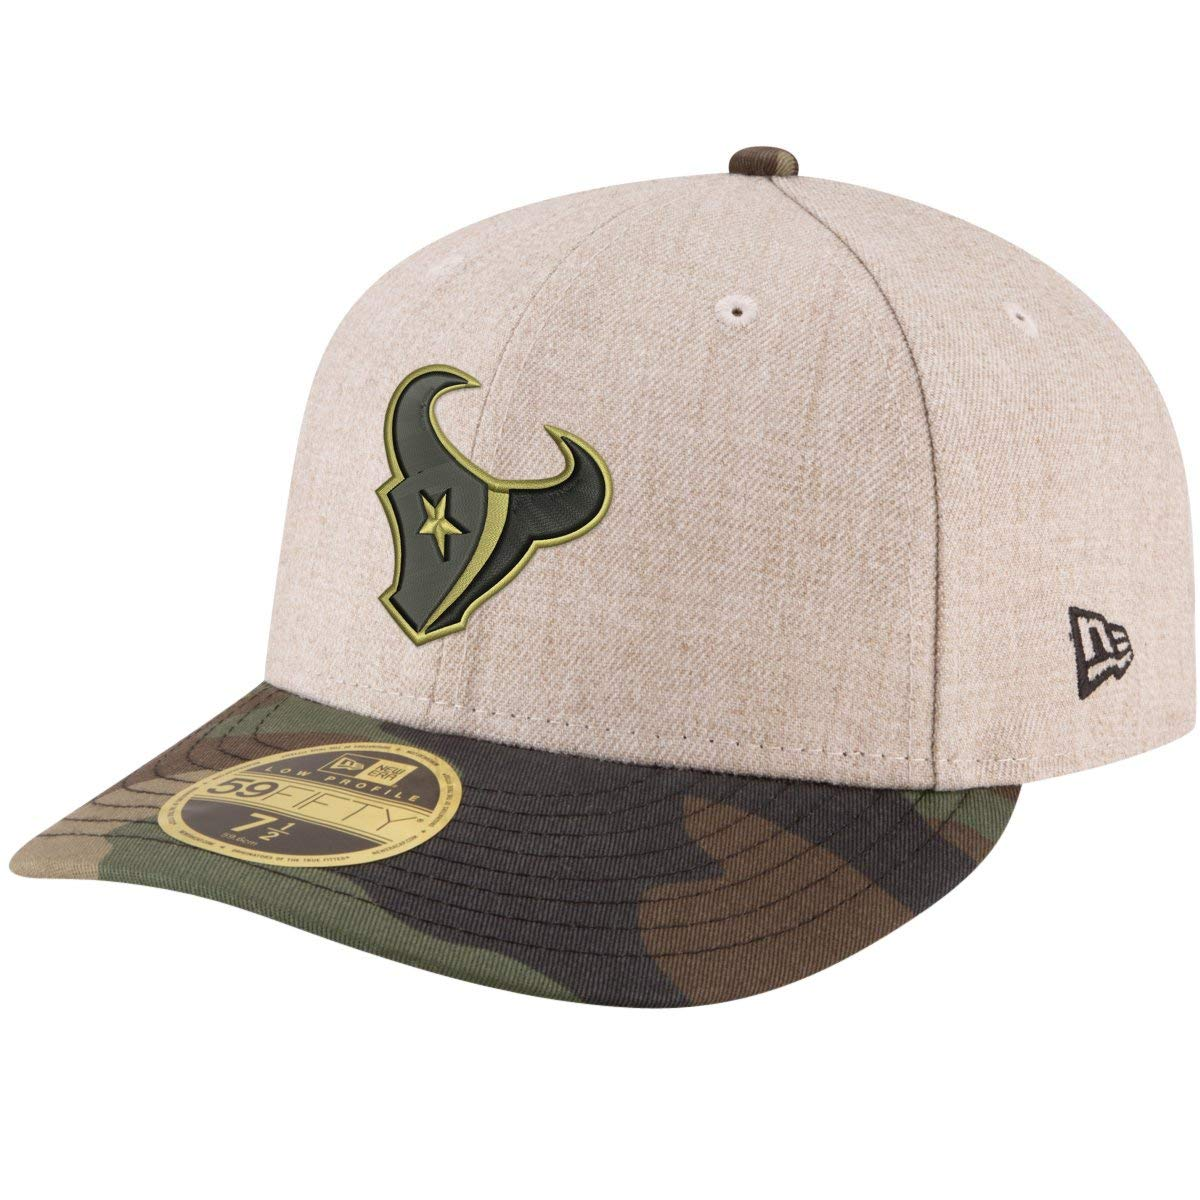 New Era 59Fifty LP Fitted Fitted Fitted Cap - NFL Houston Texans B07HRYGH2H Baseball Caps Globale Verkäufe 47bbfc